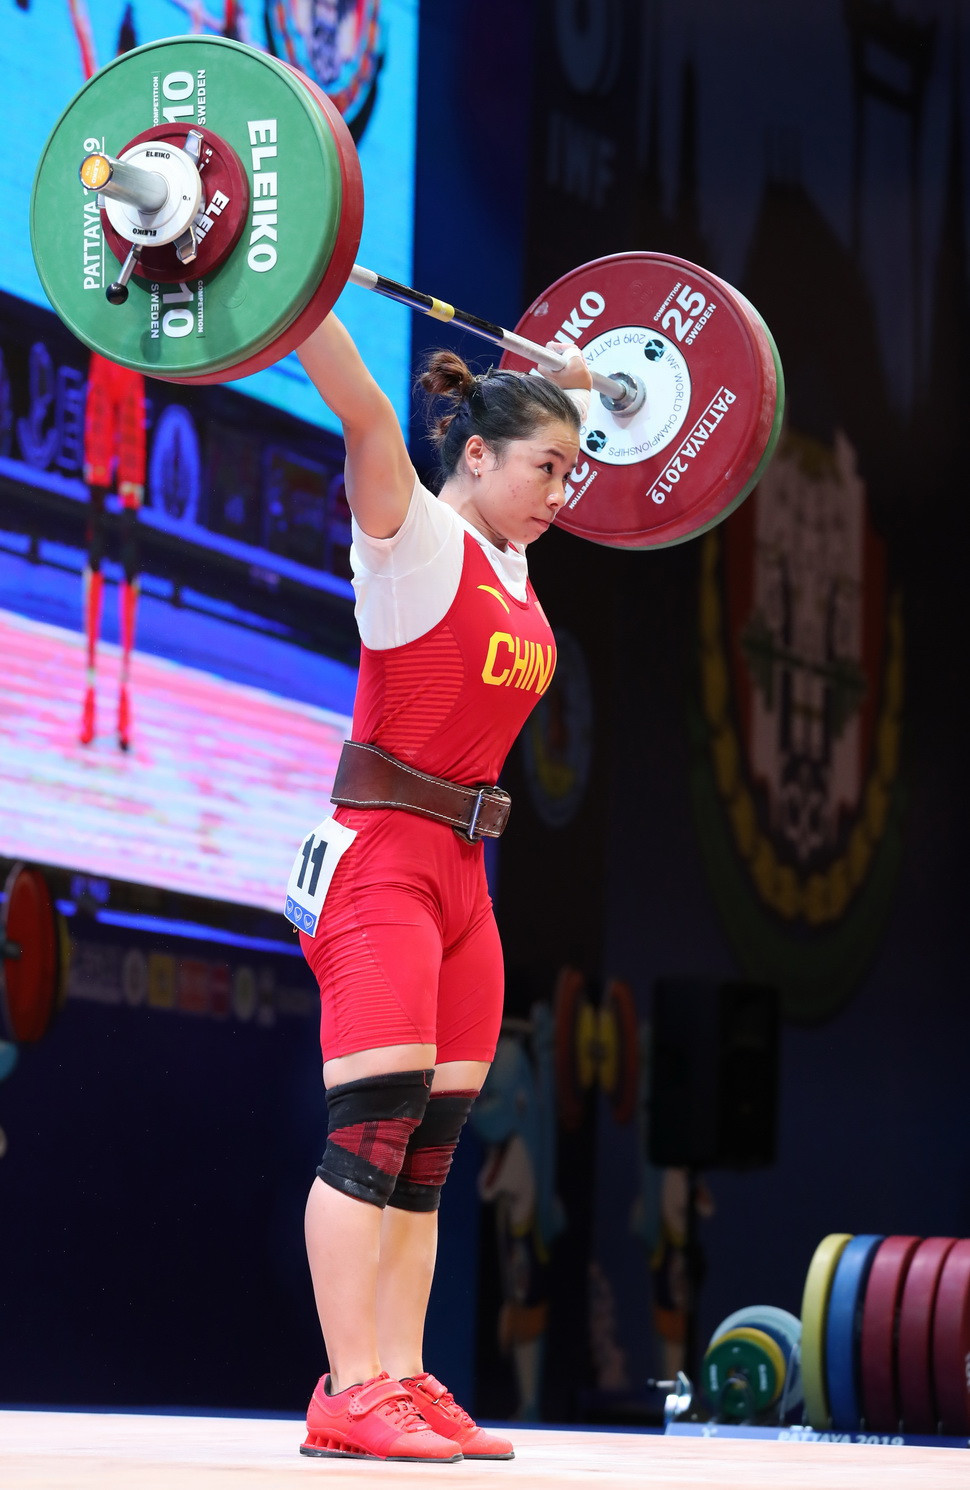 Compatriot Zhang Wanqiong came second in the total ©IWF